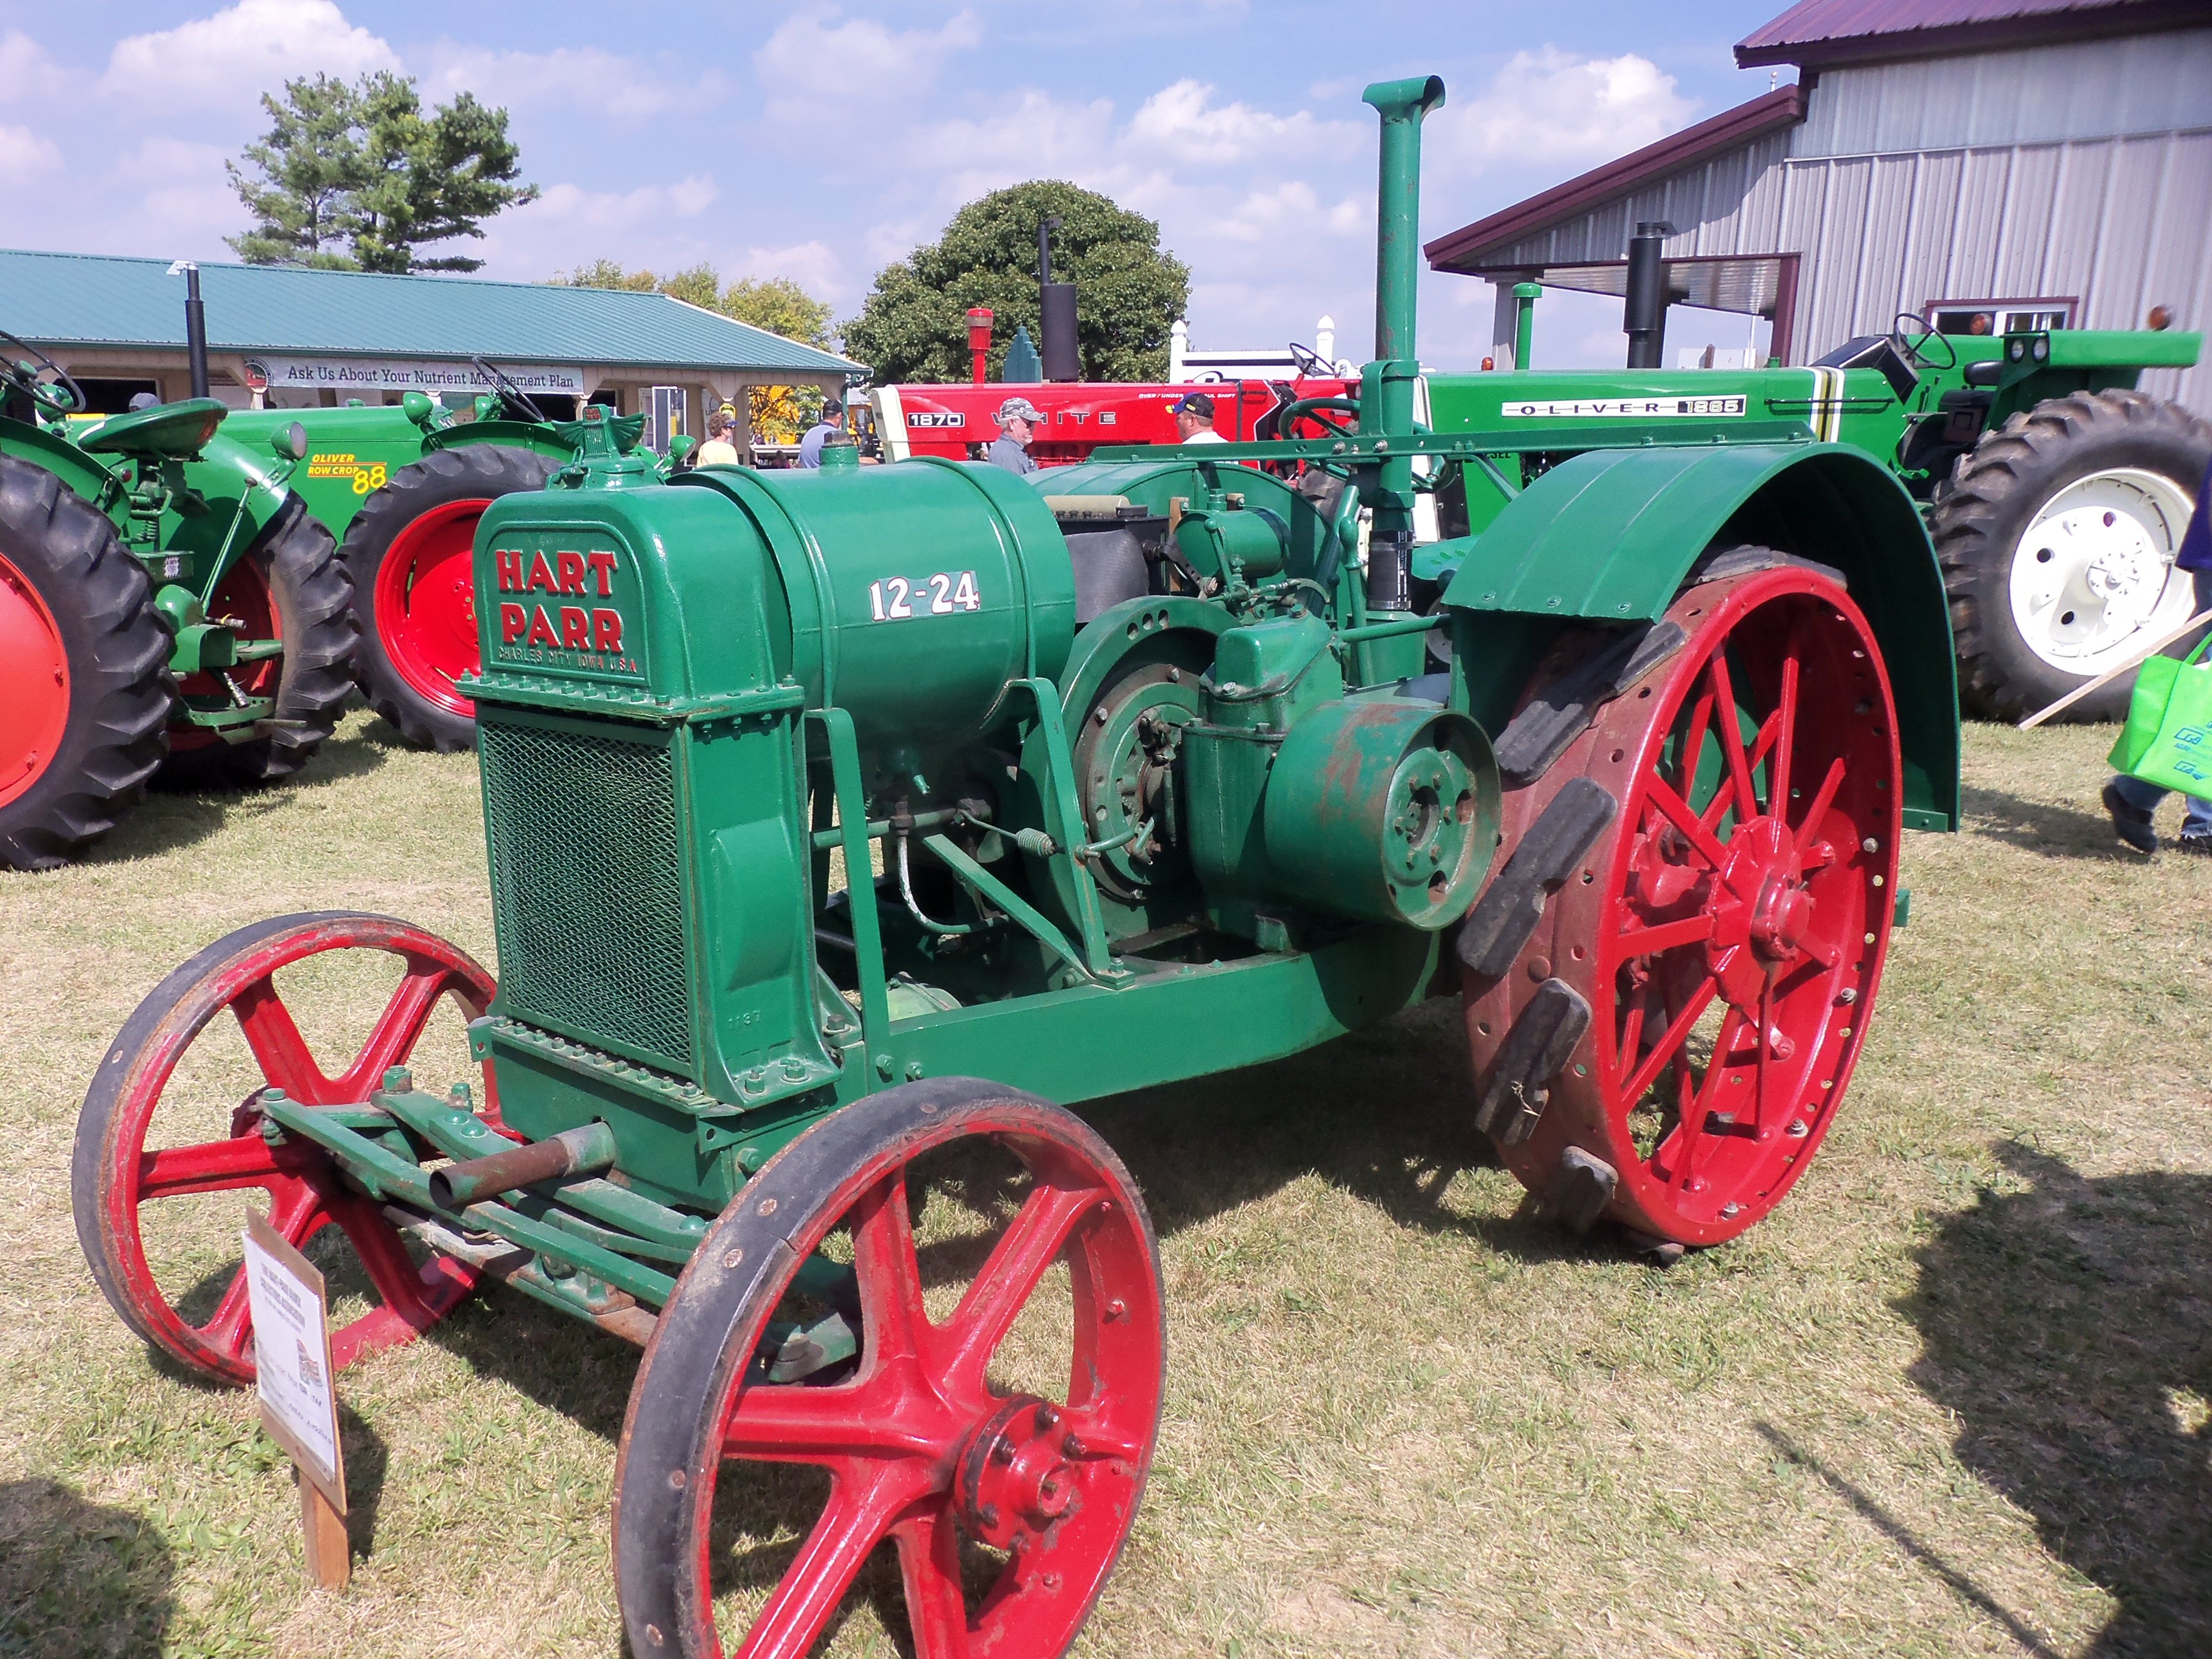 Another Picture Of Old Hart Parr Oliver 12 24 Tractor